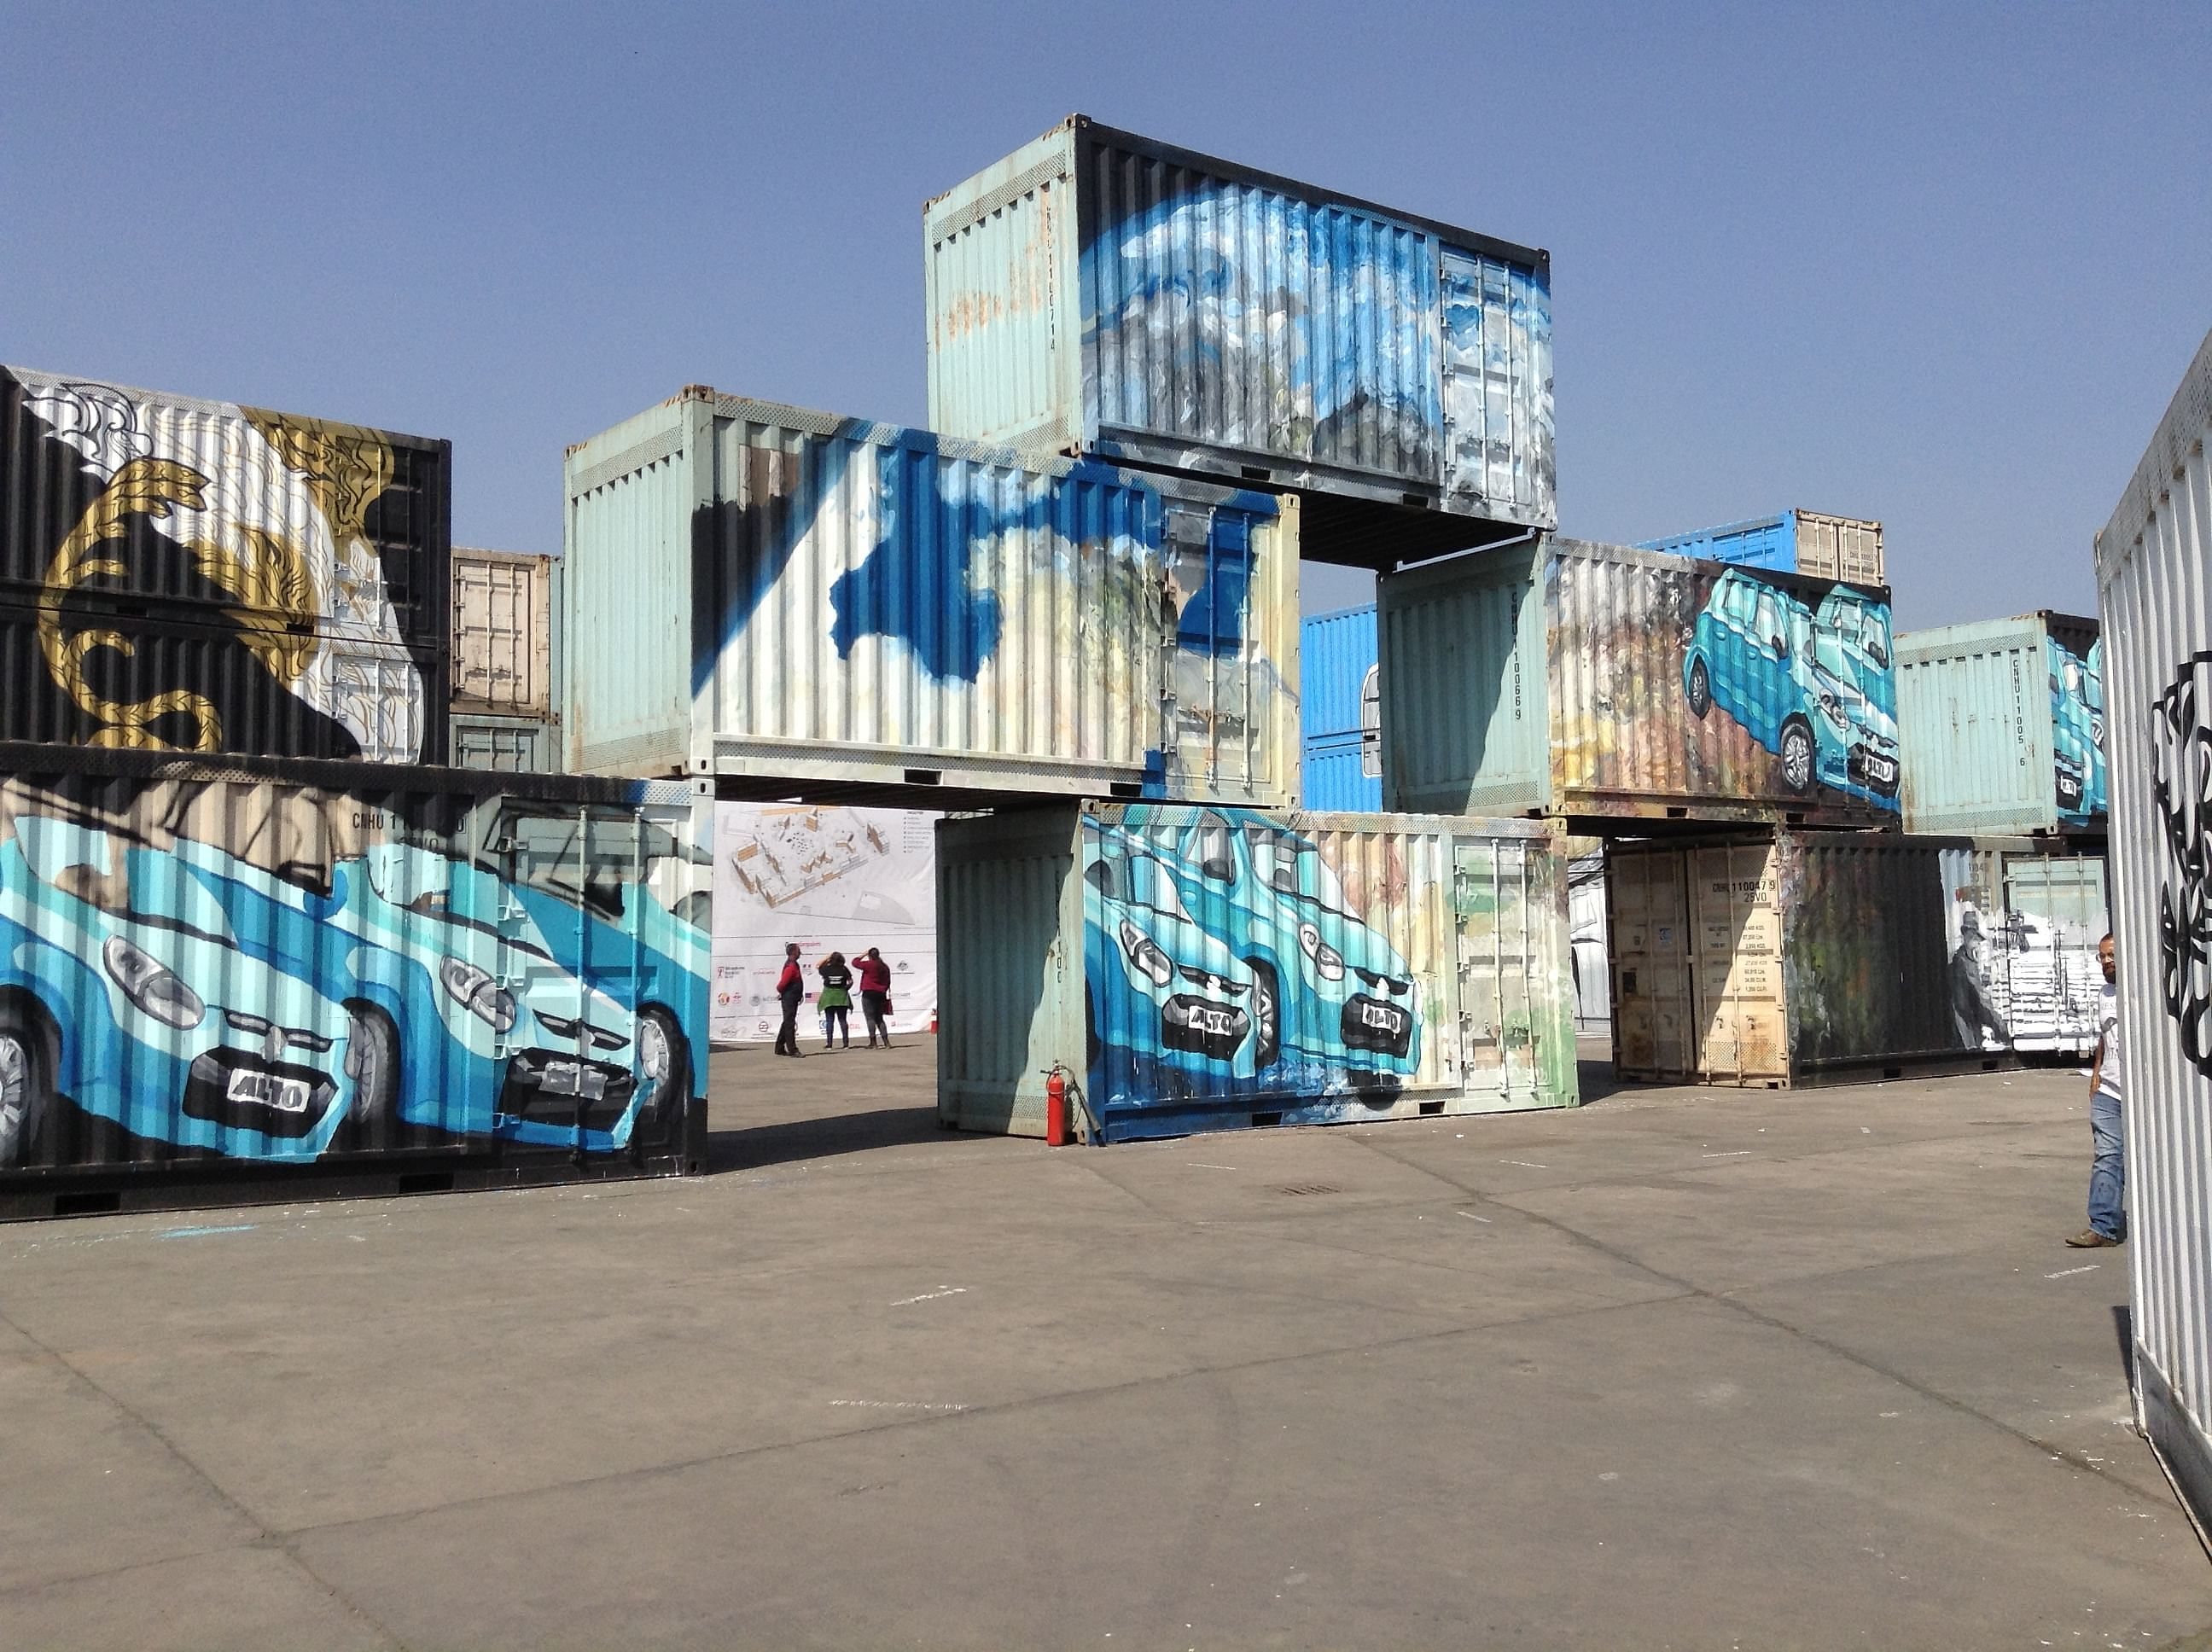 Alto's painted on a wall made of containers